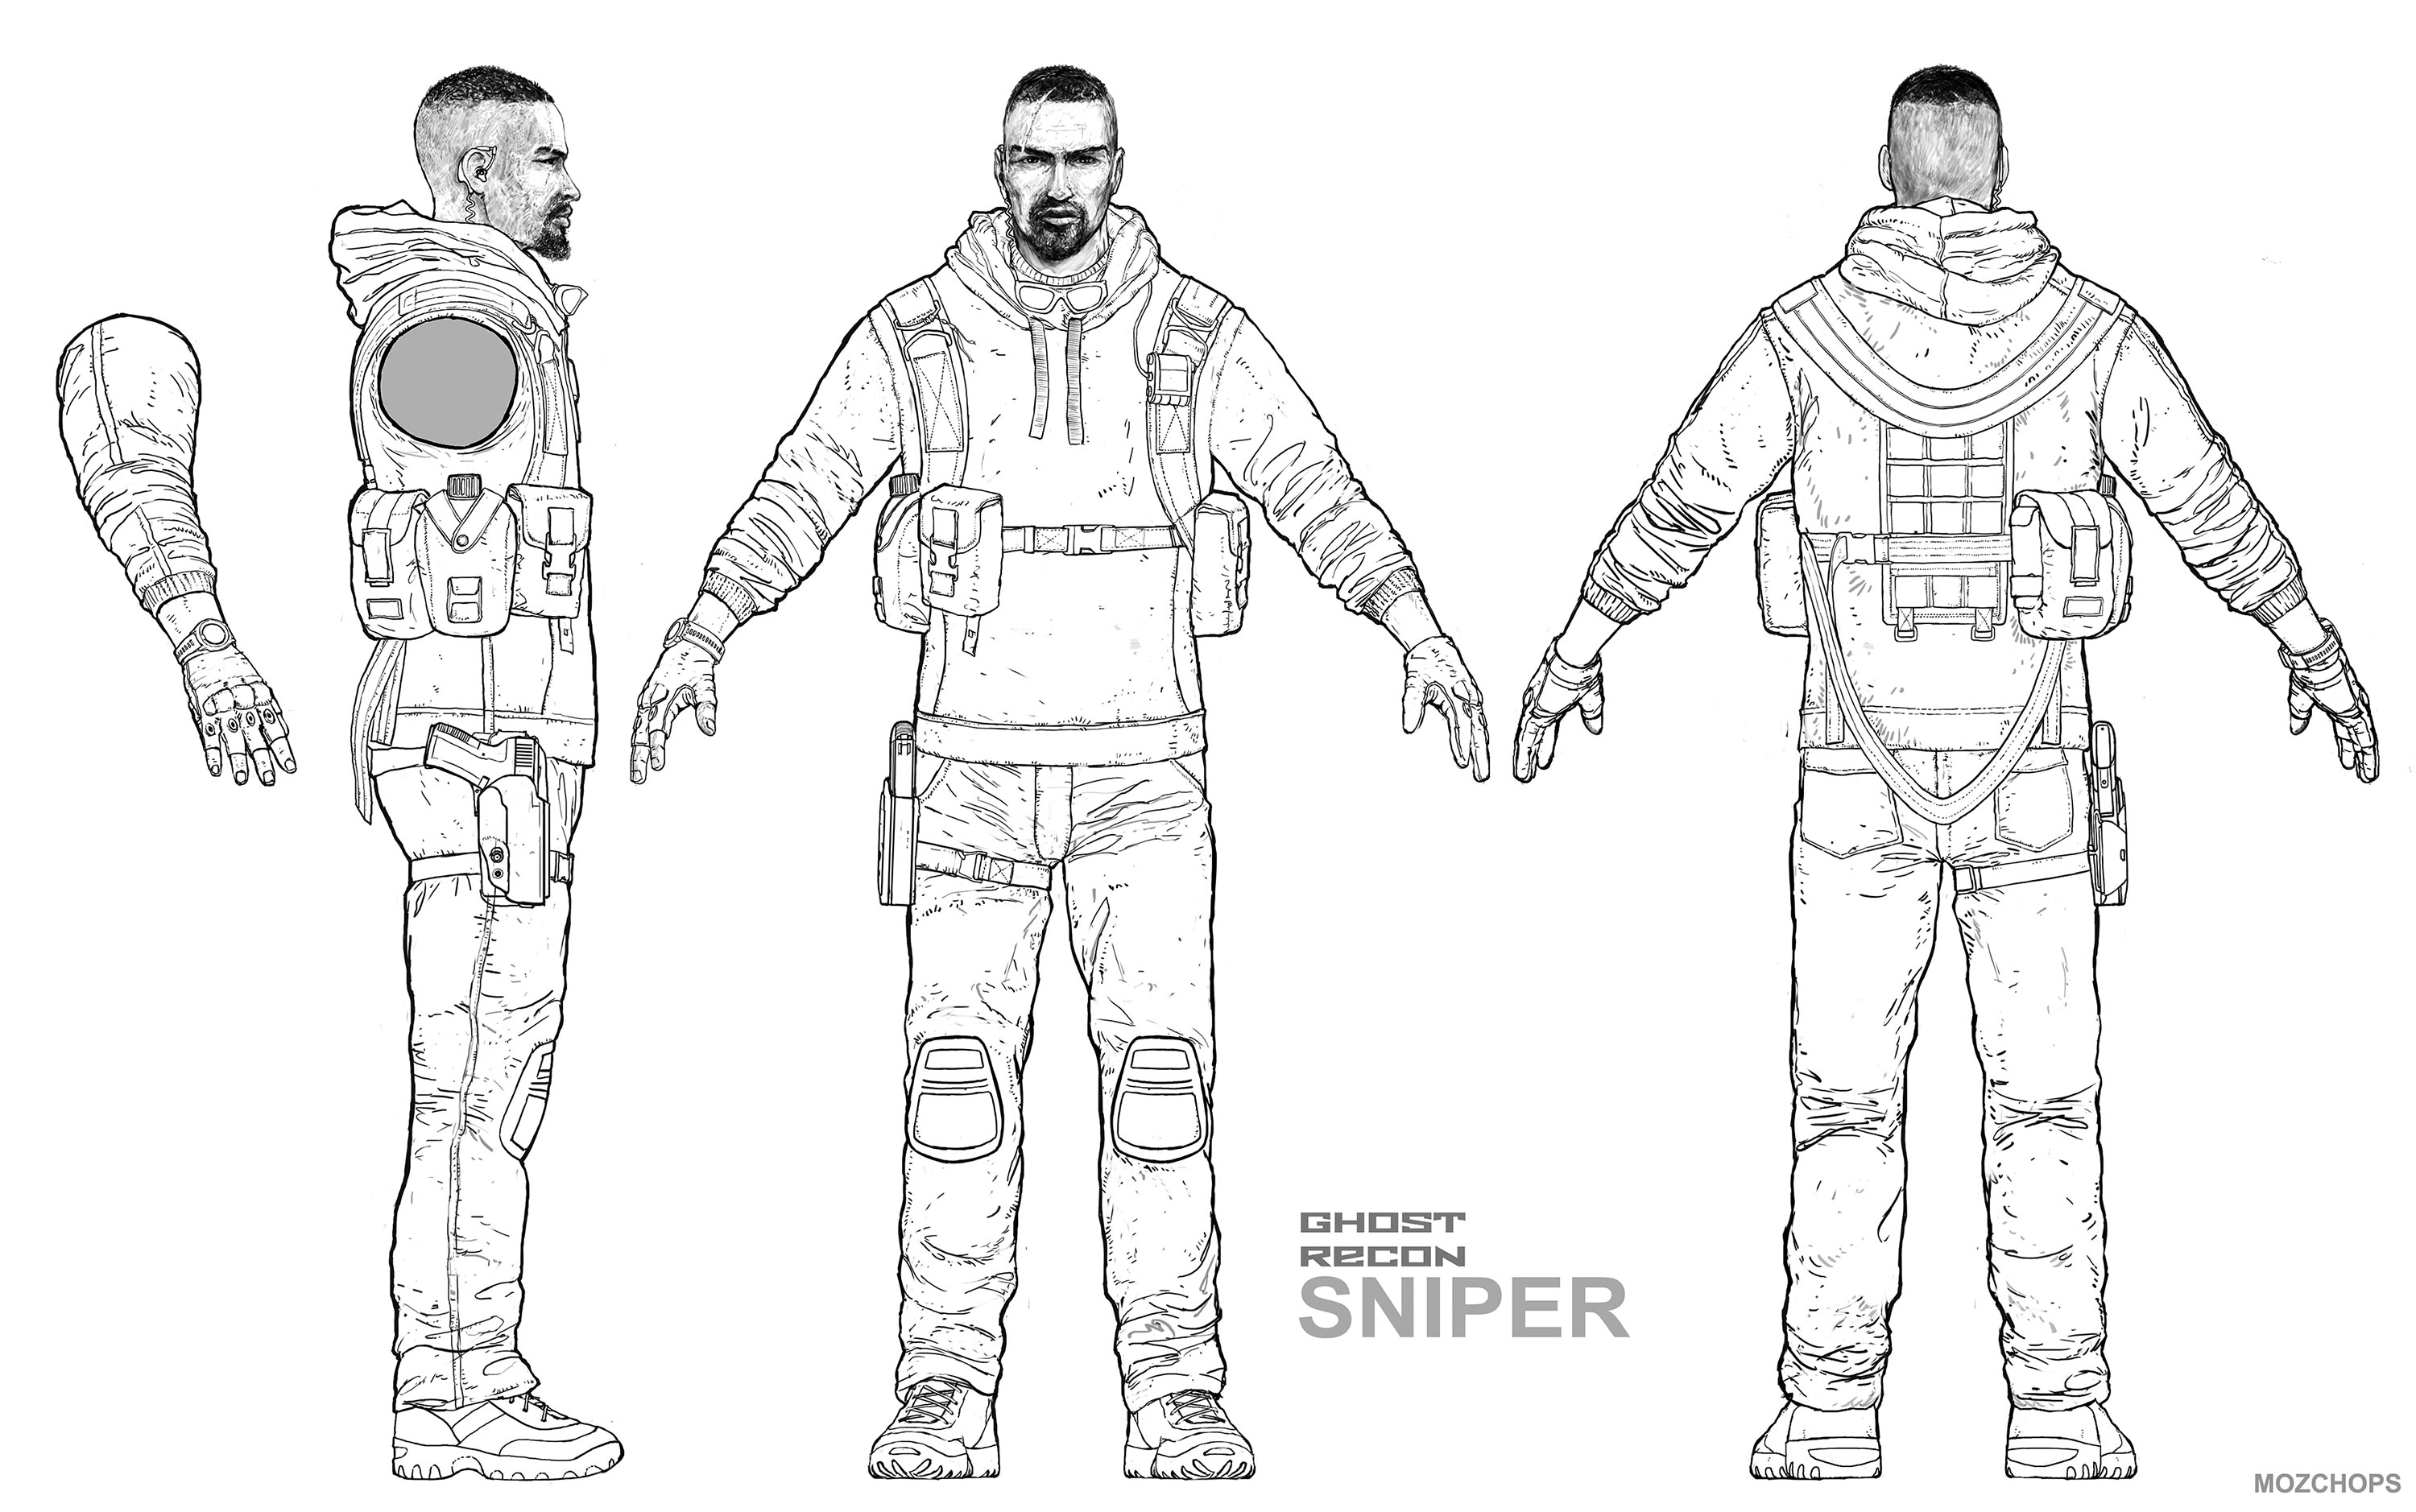 ghost-recon-sniper-ortho